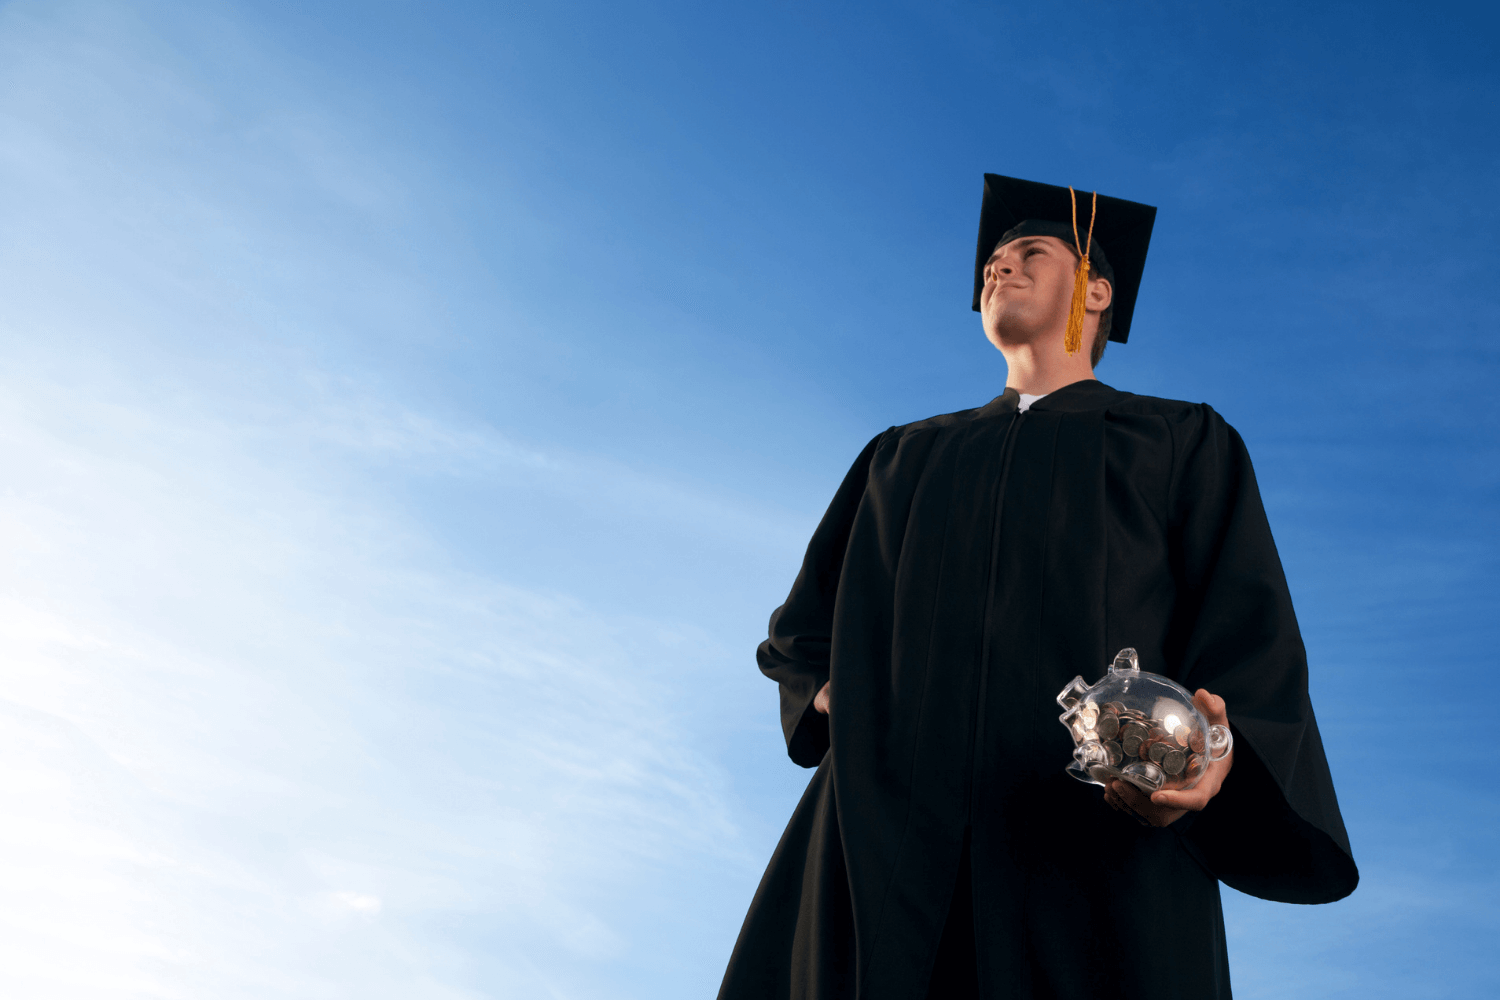 College graduate holding a transparent piggy bank with a bright blue sky in the background